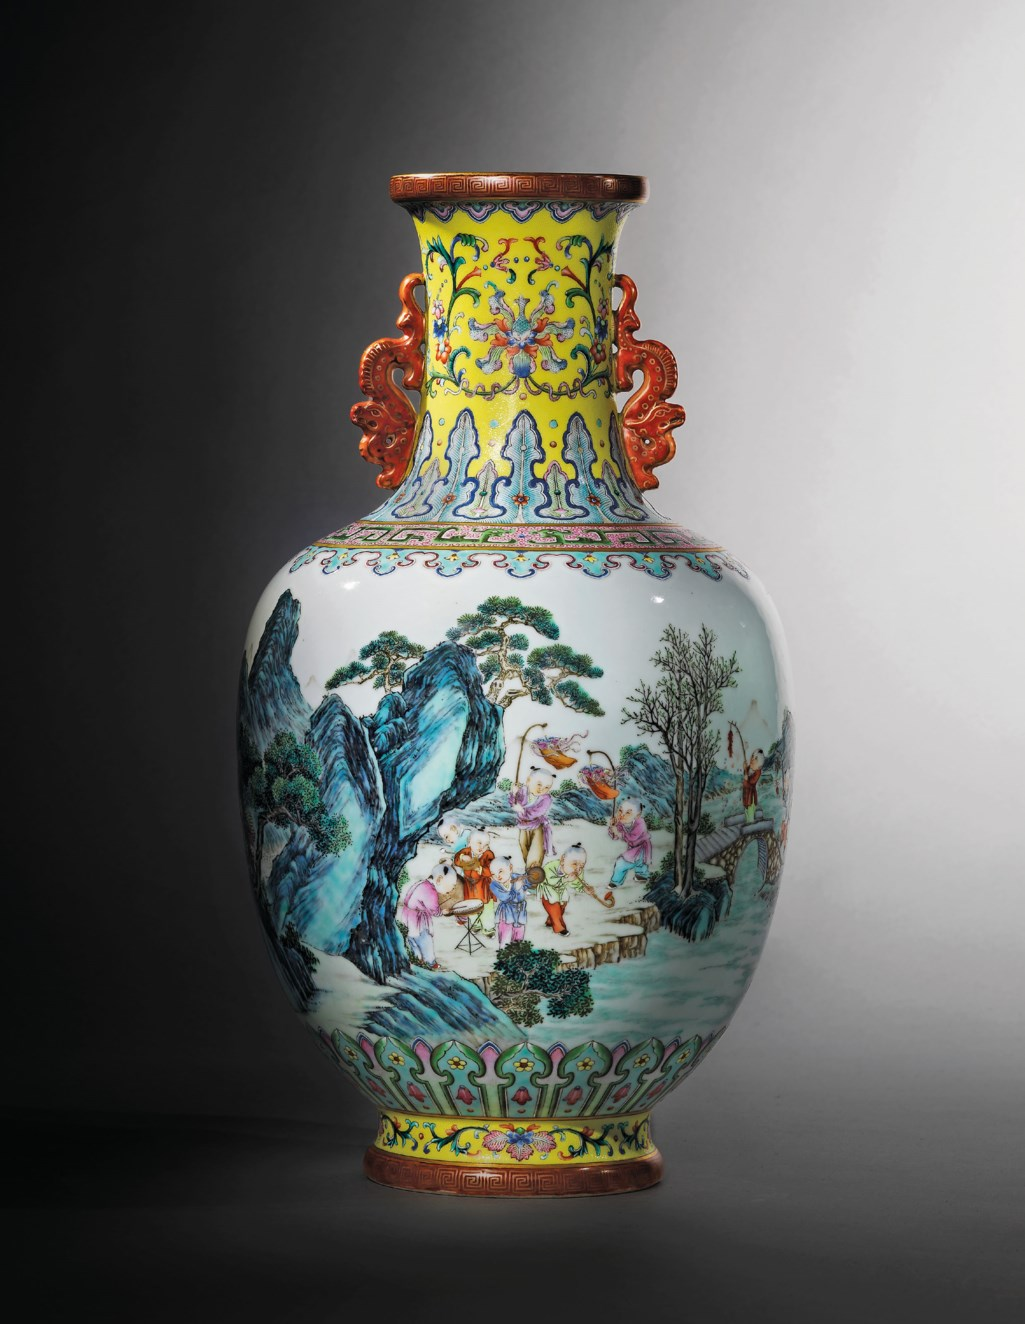 A FINE AND SUPERB YANGCAI YELLOW-GROUND 'BOYS' VASE